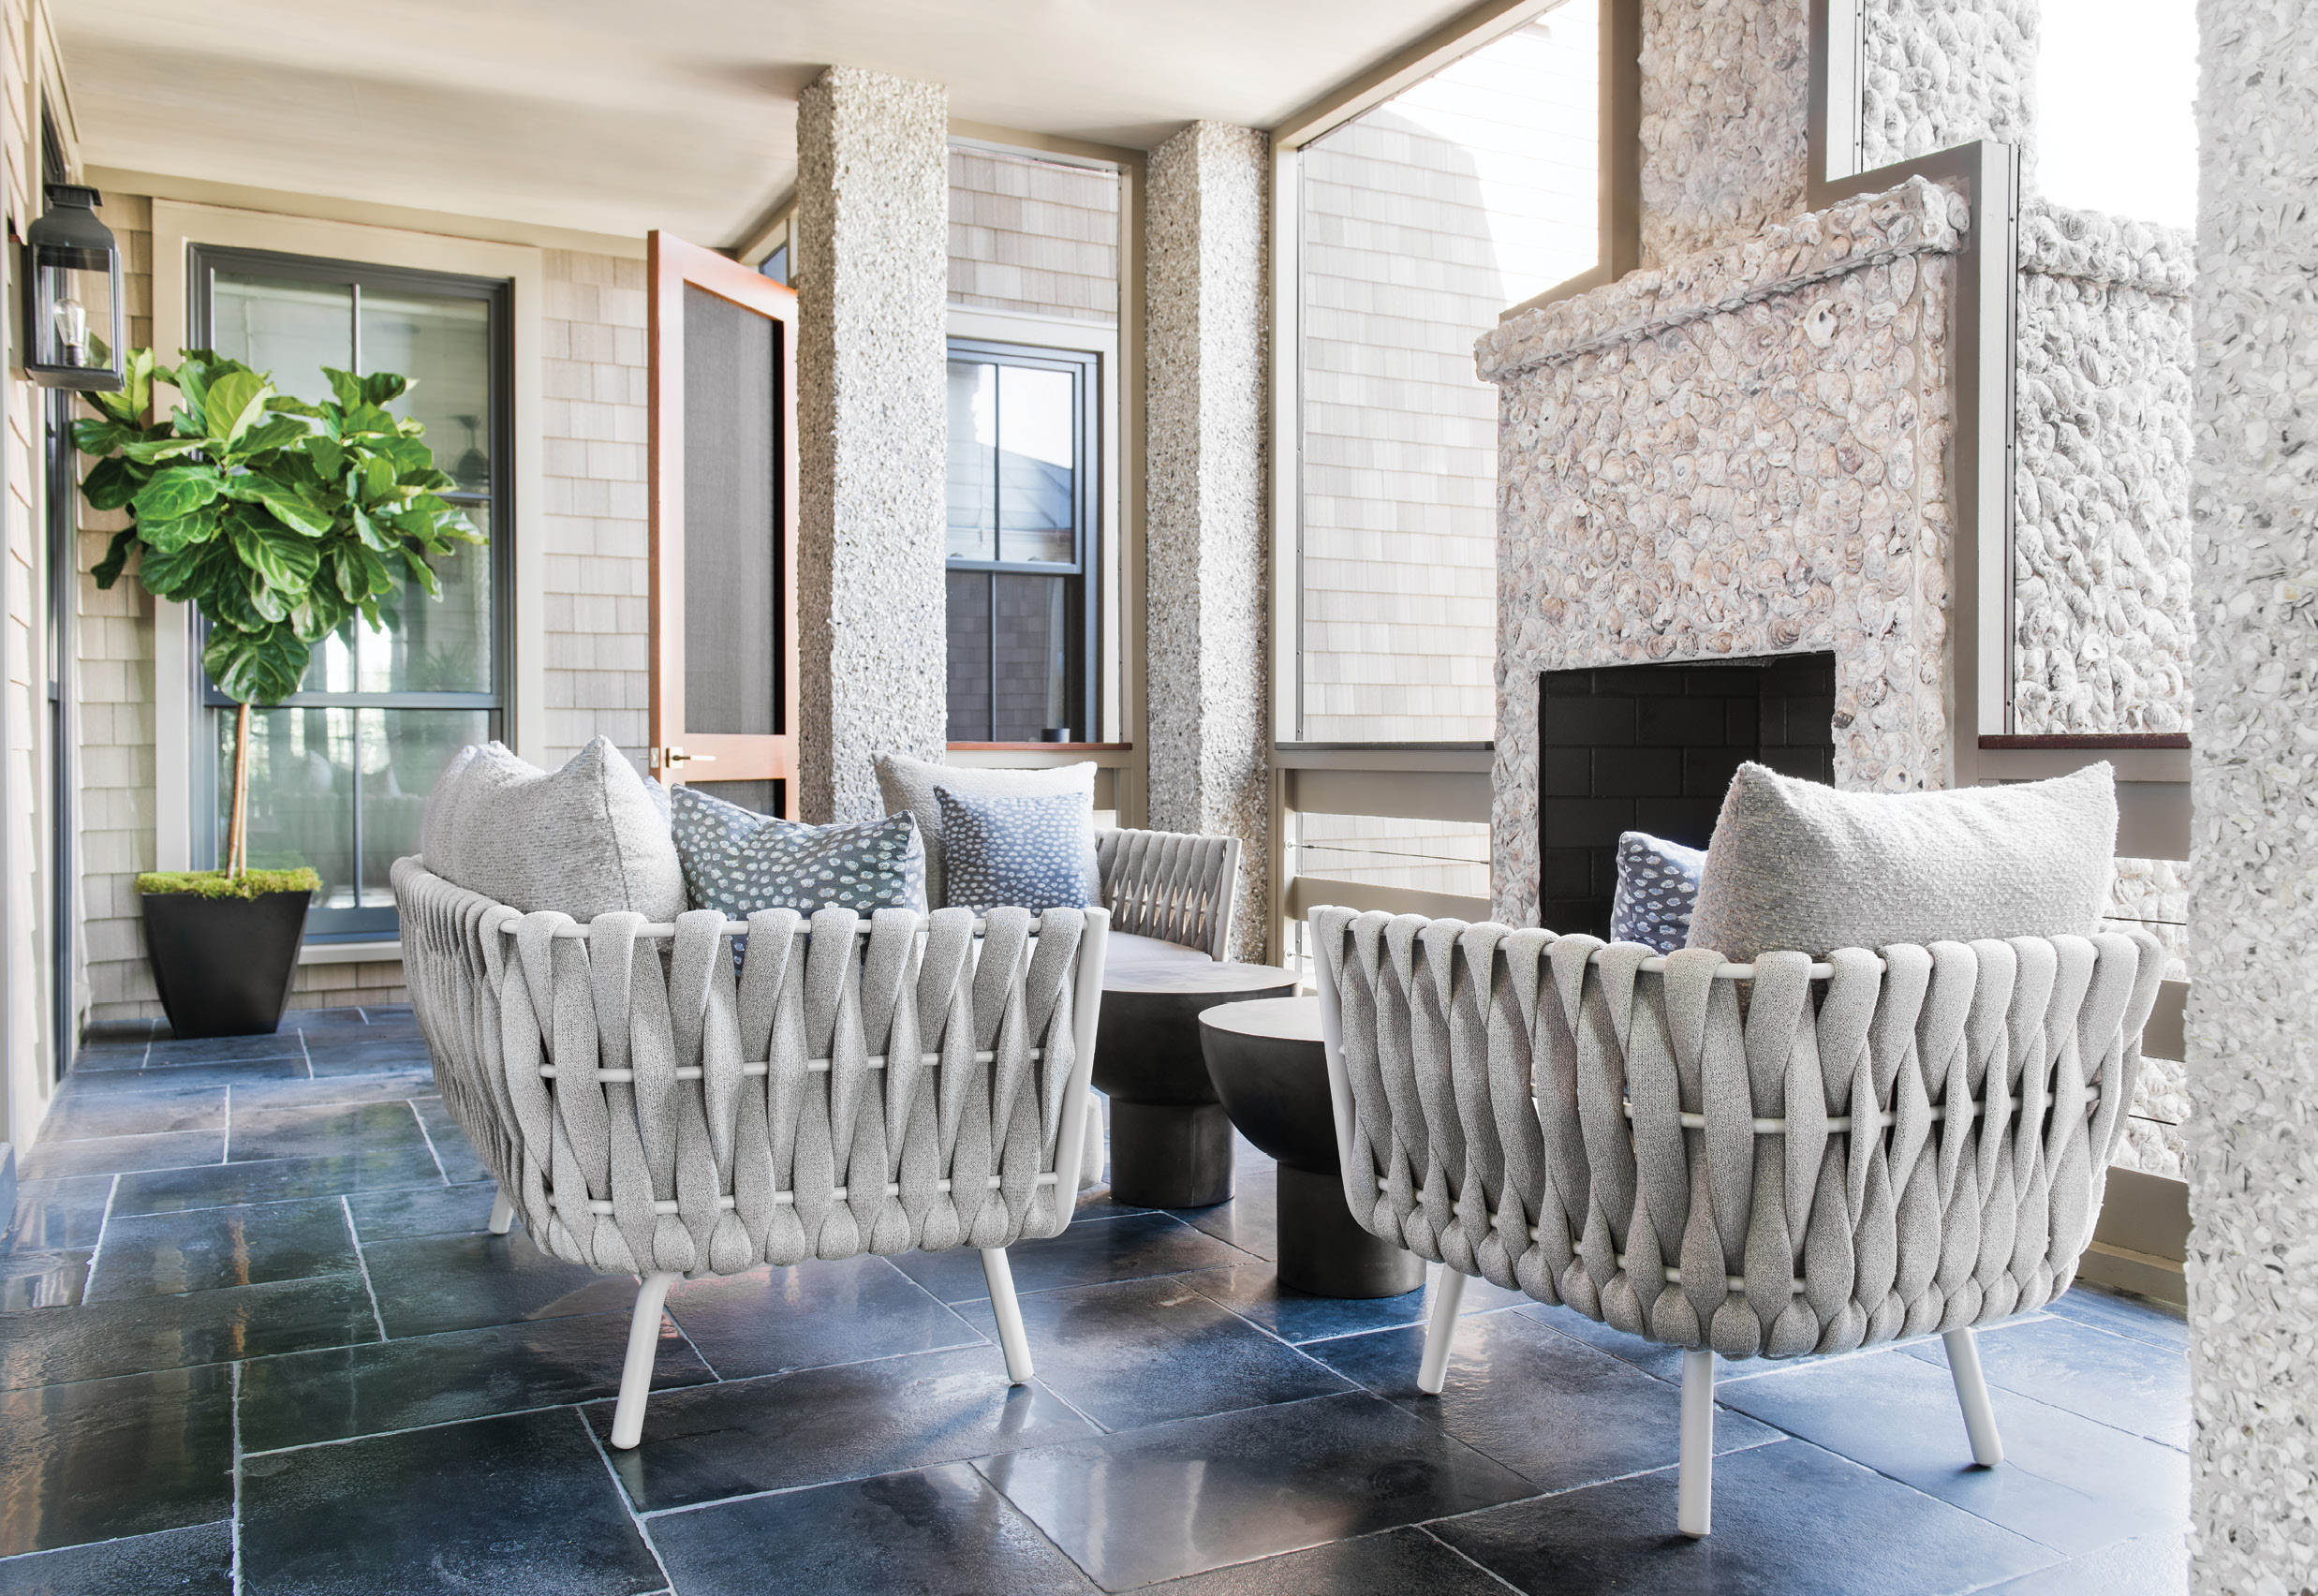 Shell Game: Stainless steel, textile-wrapped lounge chairs and a sofa from JANUS et Cie complement the simple yet dramatic second-floor porch, with its hand-thrown, oyster-shell fireplace and limestone flooring.